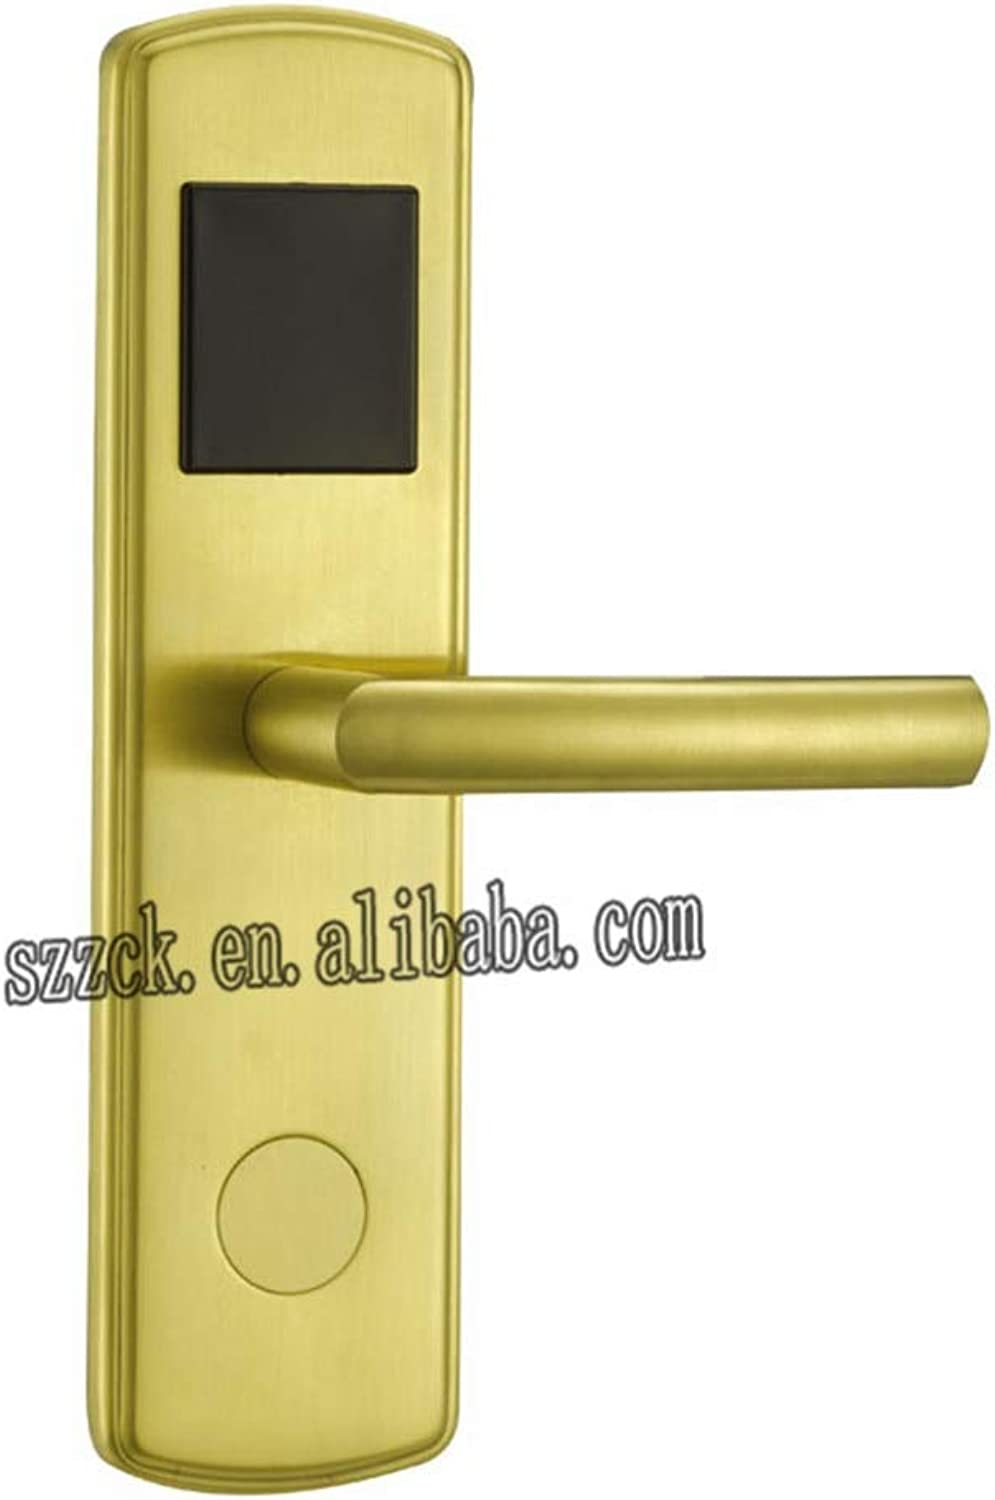 Latest Stainless Steel Electronic RFID Card Hotel Door Lock with Access Control System  (color  Temic5557)